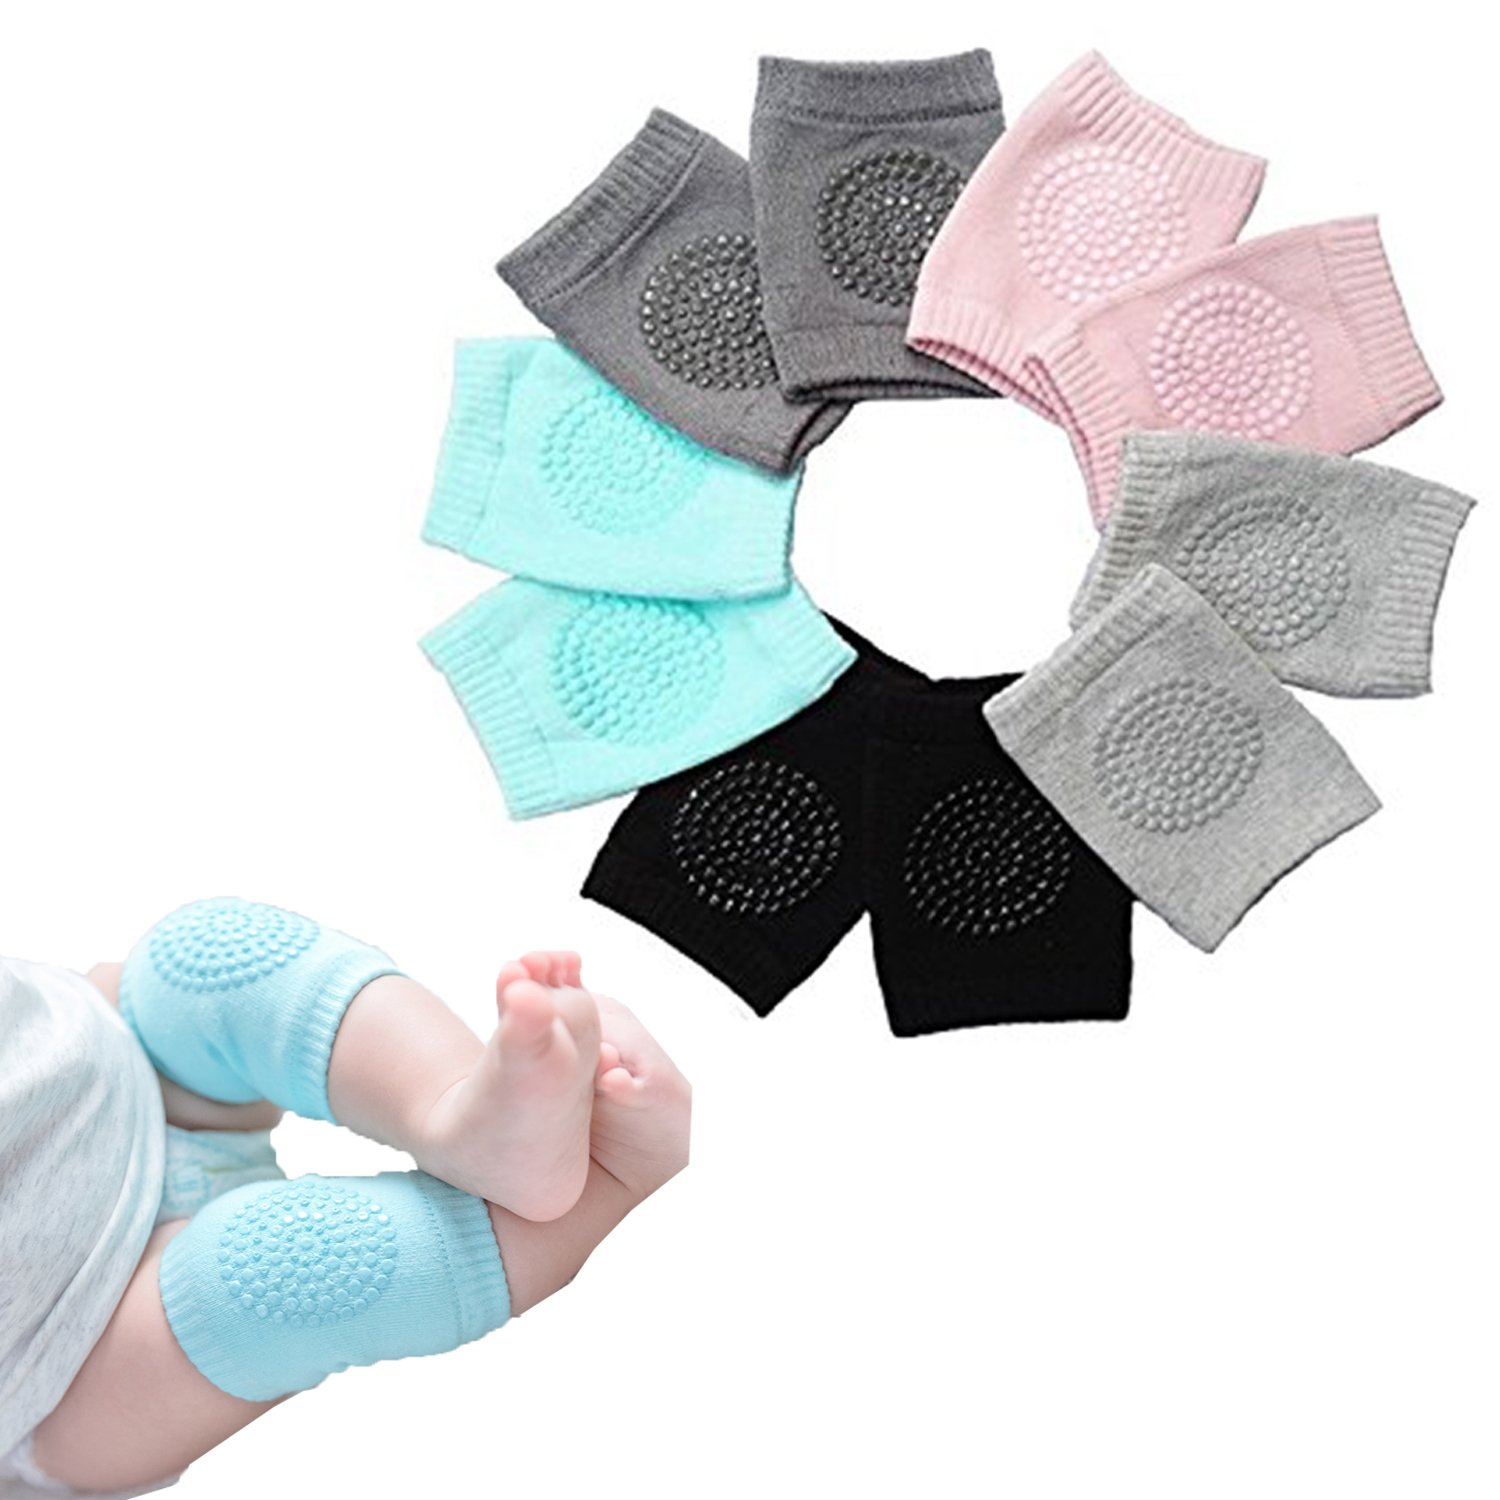 FASHIONY Baby Boys Girls Crawling Anti-Slip Knee pads Baby Toddlers Kneepads 5 Pairs